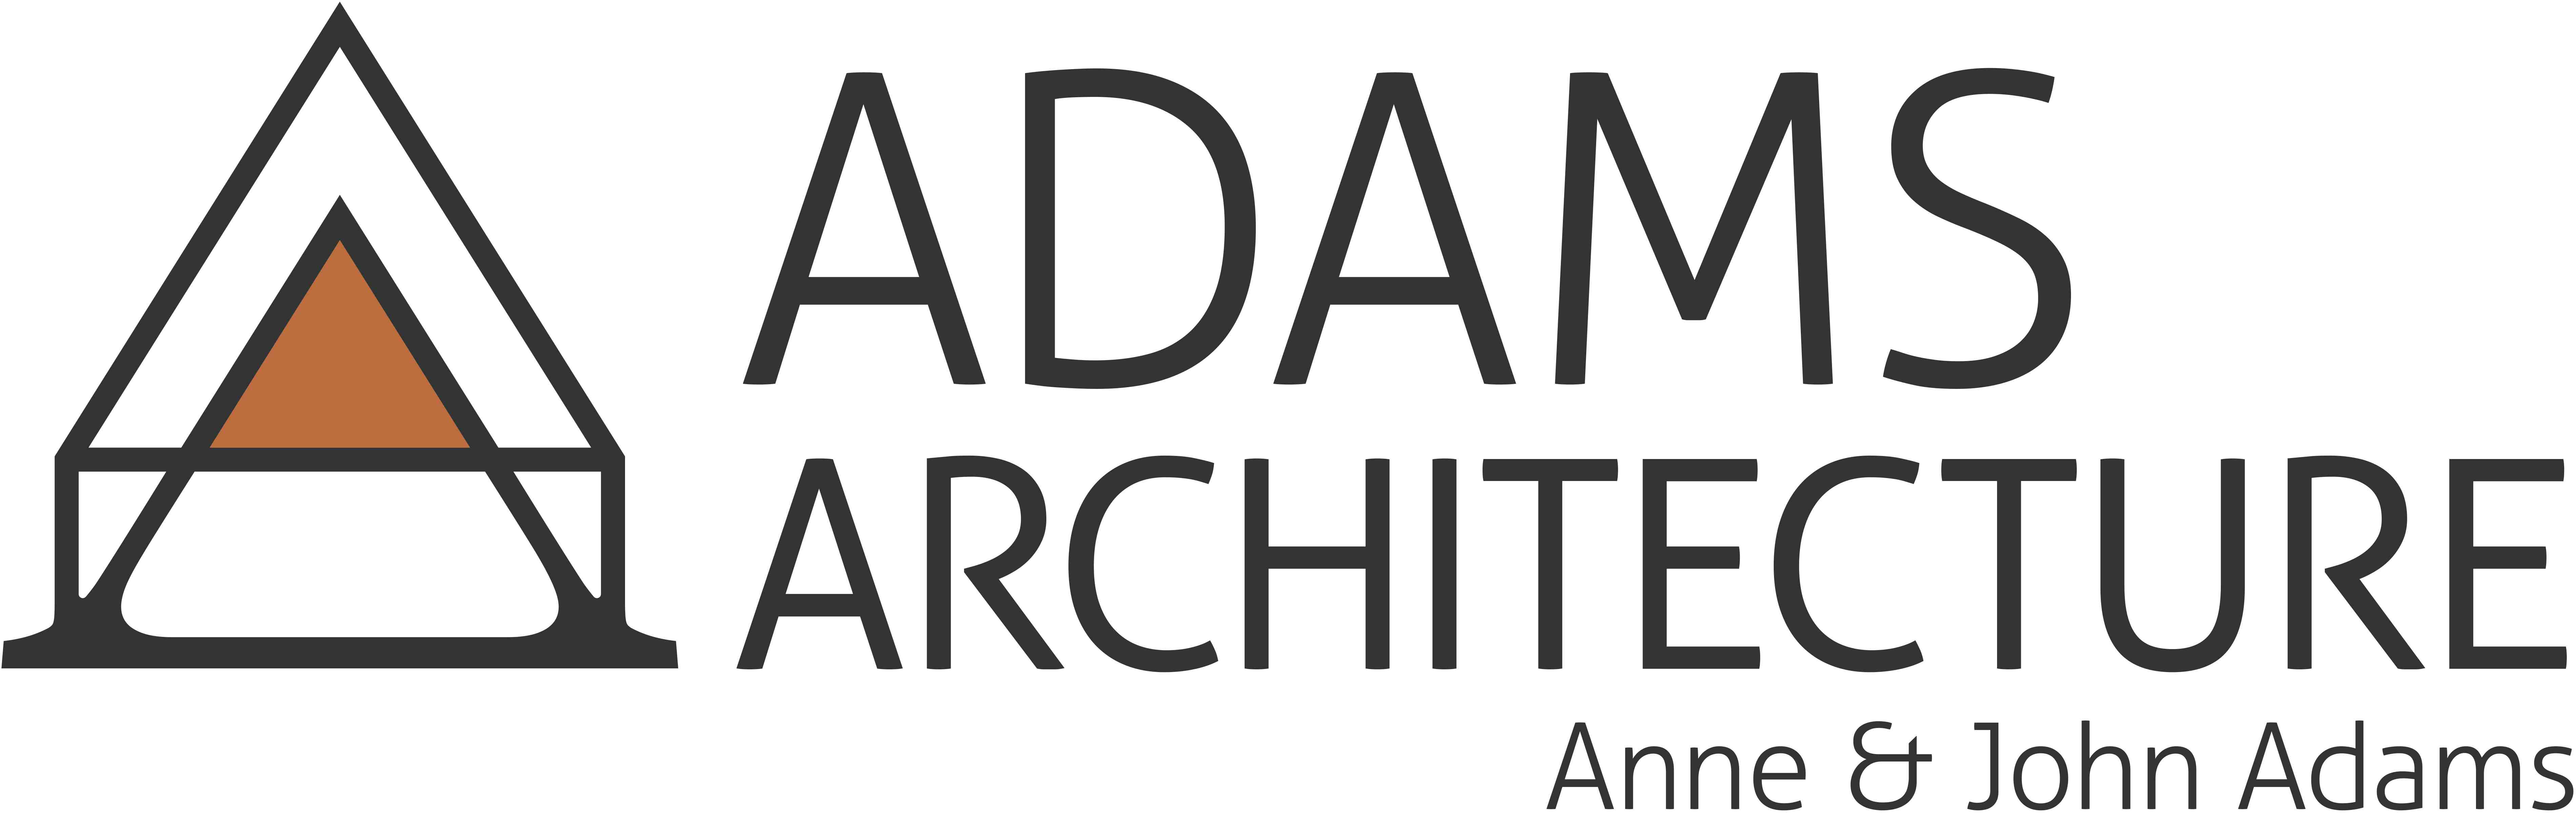 Adams Architecture Anne & John Adams logo